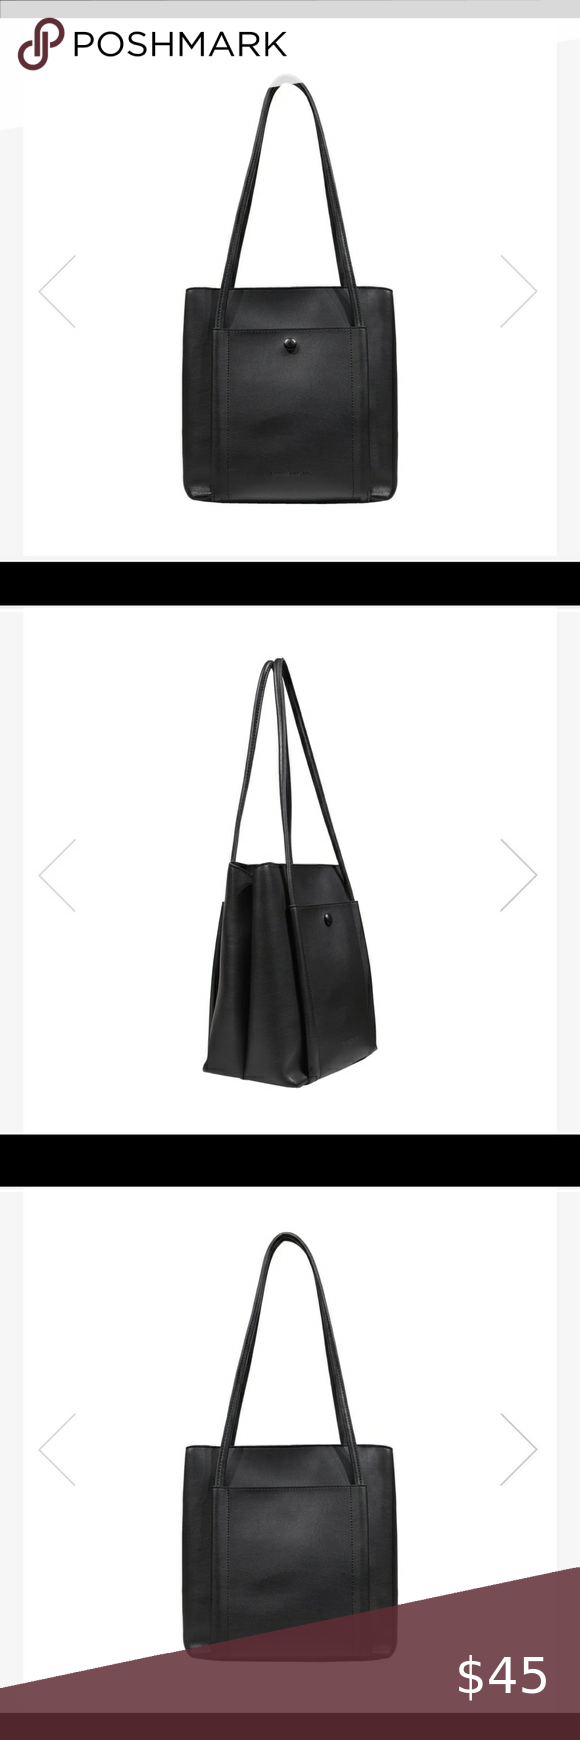 Expressions Nyc Vegan Leather Tote In 2020 Vegan Leather Tote Leather Tote Vegan Leather